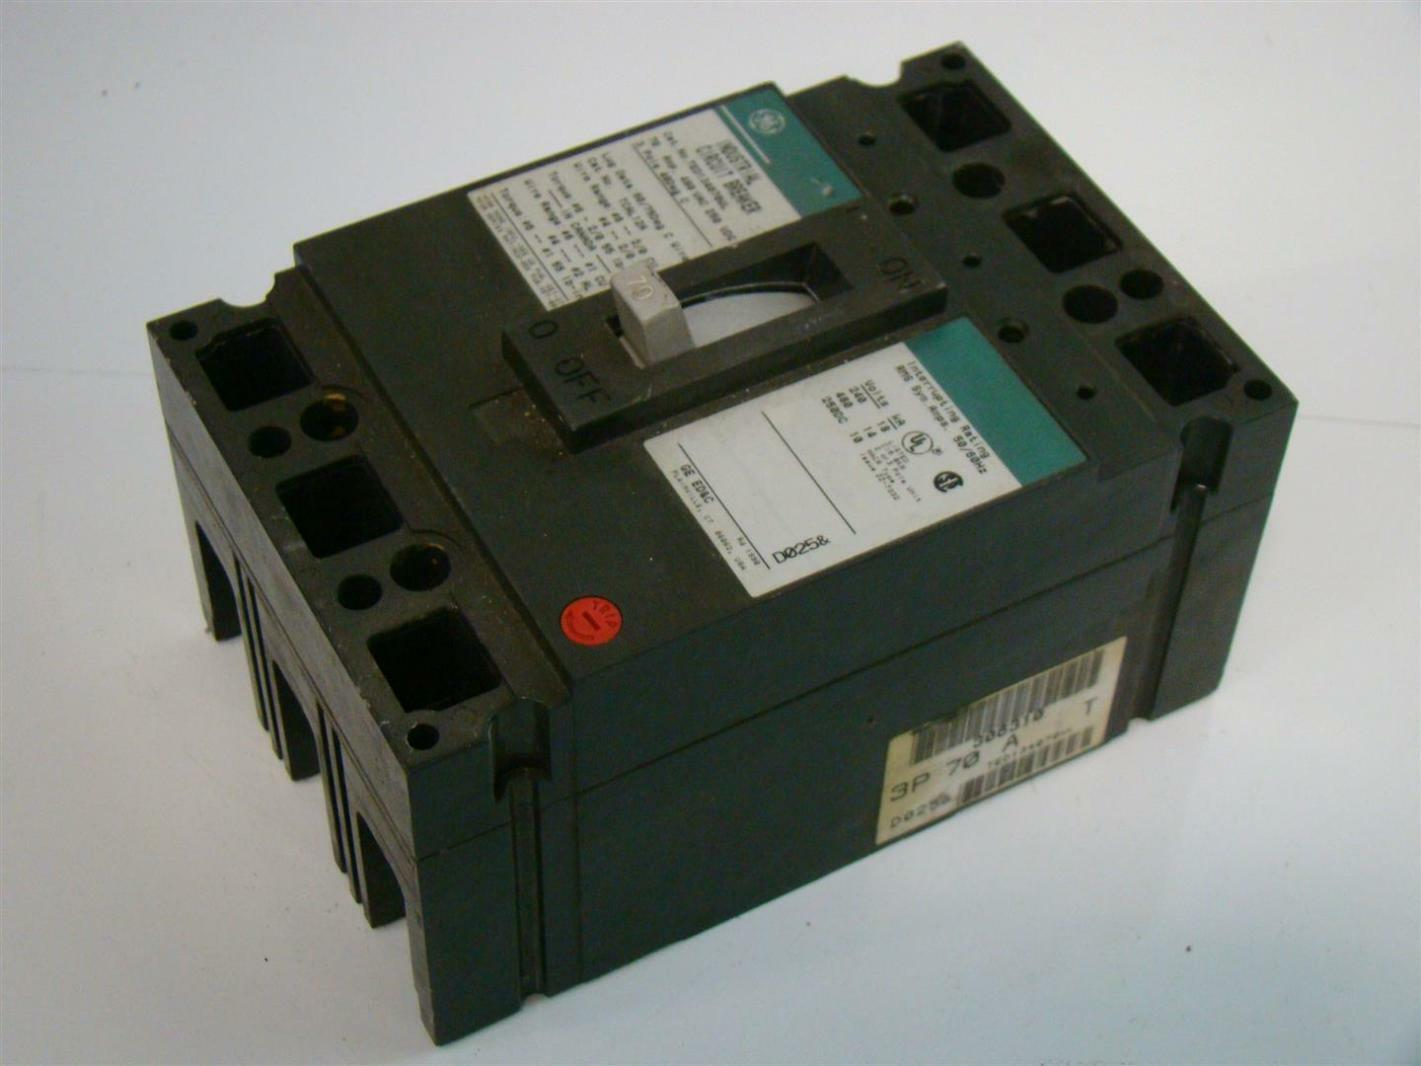 hight resolution of general electric circuit breaker 70a 3pole 480vac ted134070wl